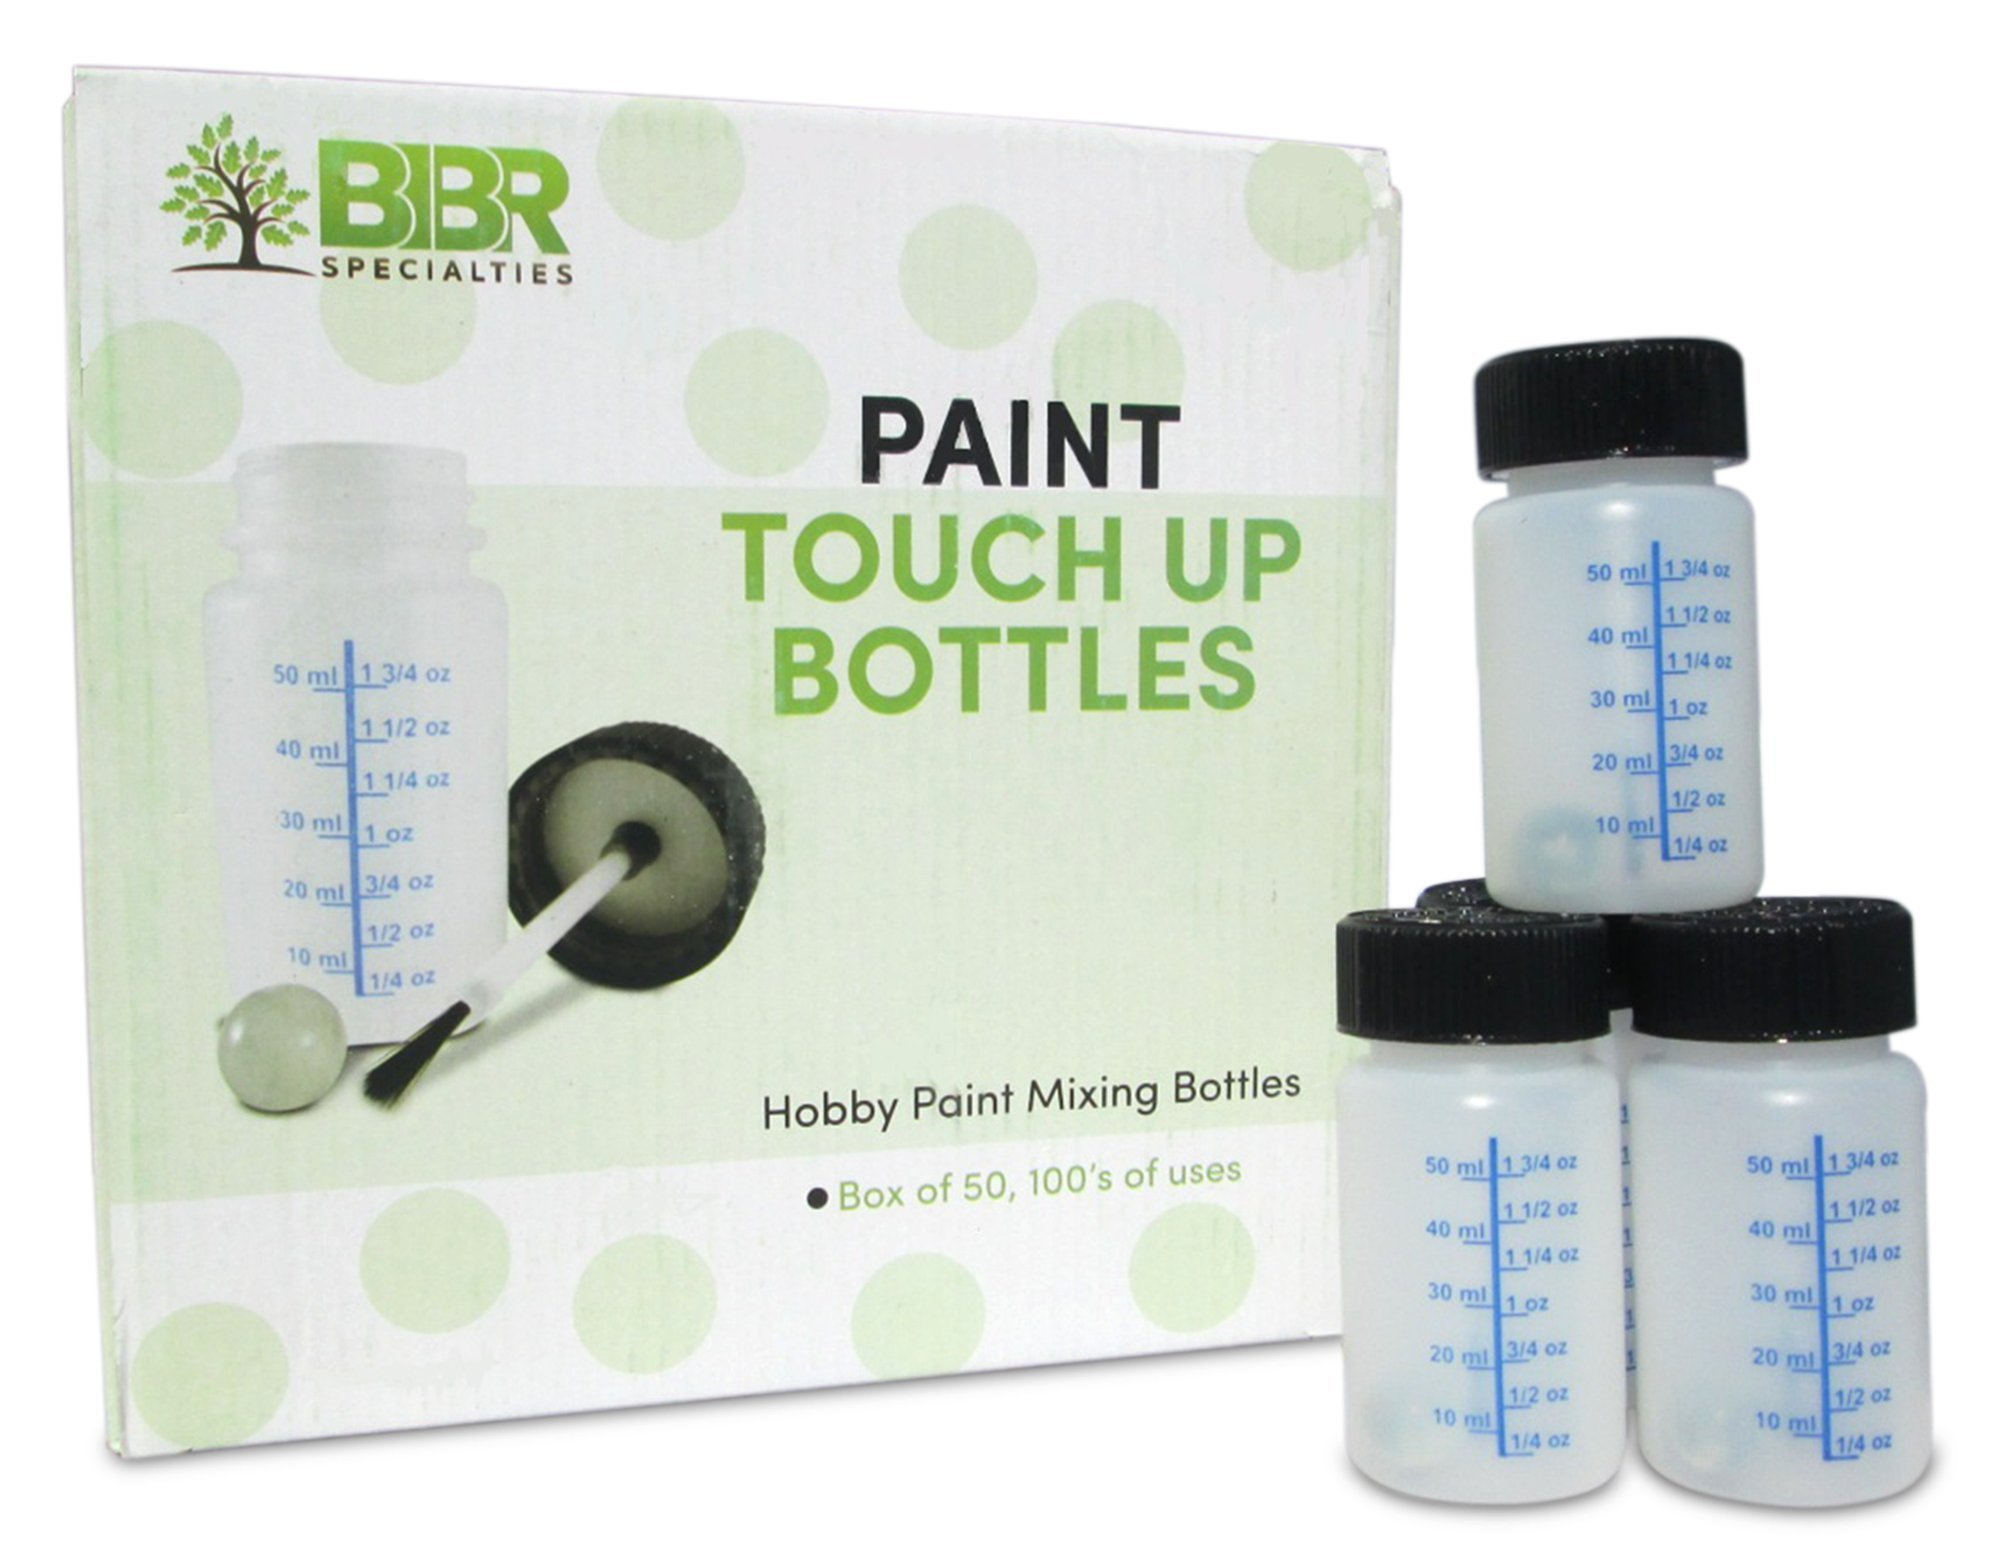 BIBR Specialties Paint Touch Up Bottles With Brush And Mixing Ball - Box Of 50-2 oz/60 ml Capacity - Ideal For Car, Automotive, Model and Hobby Painting - Solvent And Break Resistant HDPE Plastic by BIBR Specialties